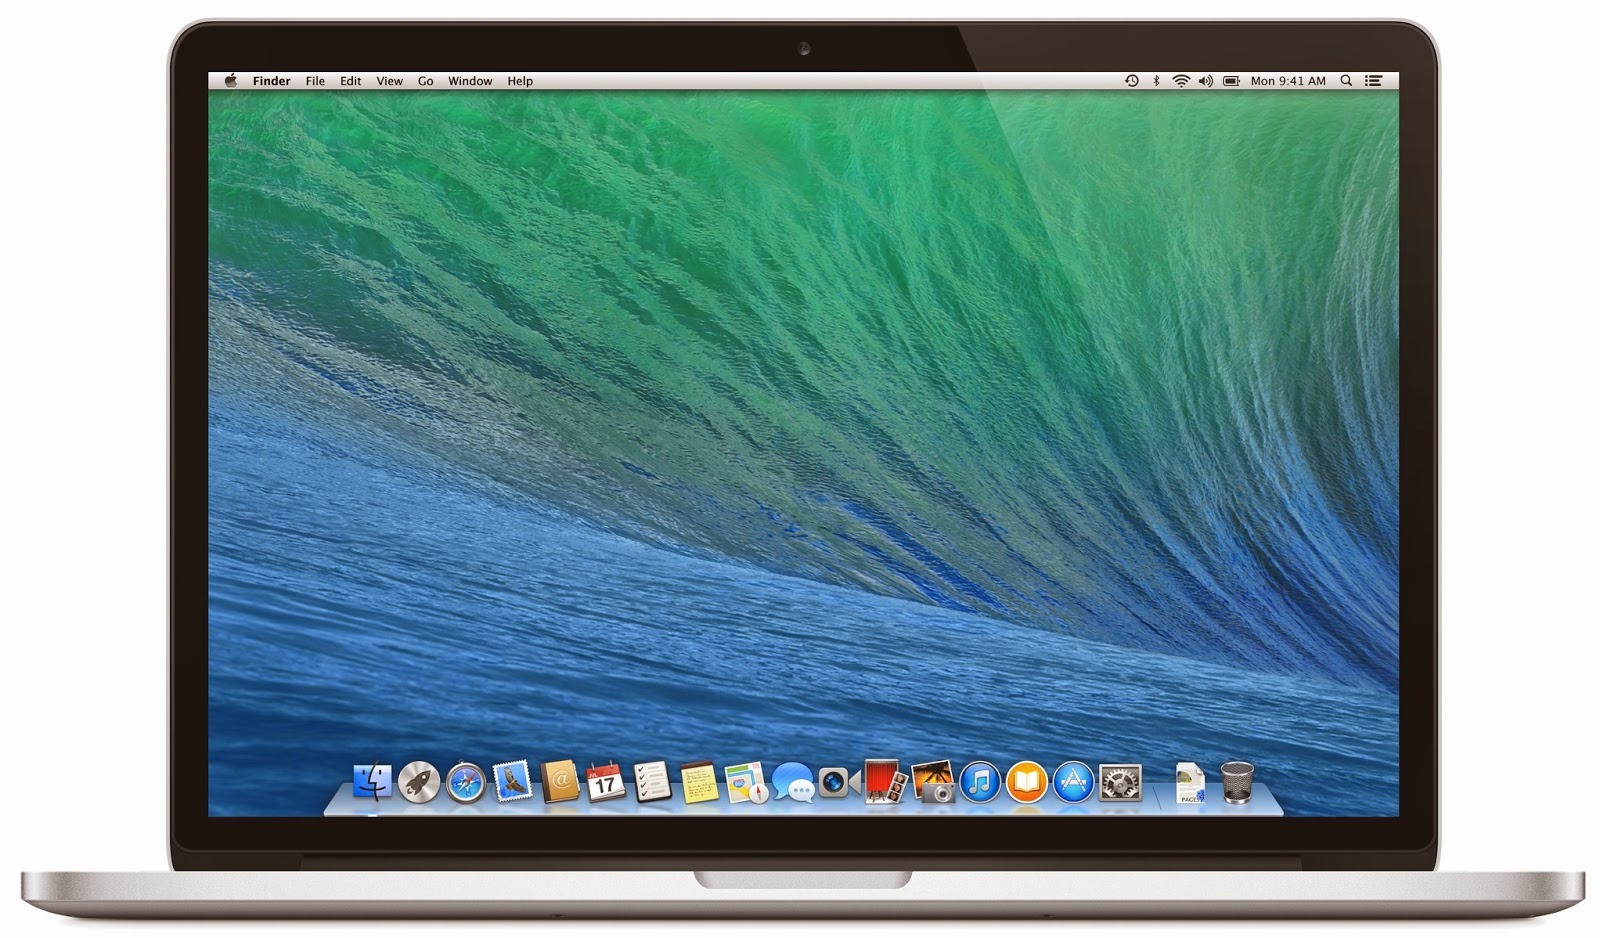 How To Make Room On My Flash Drive Macbook Pro